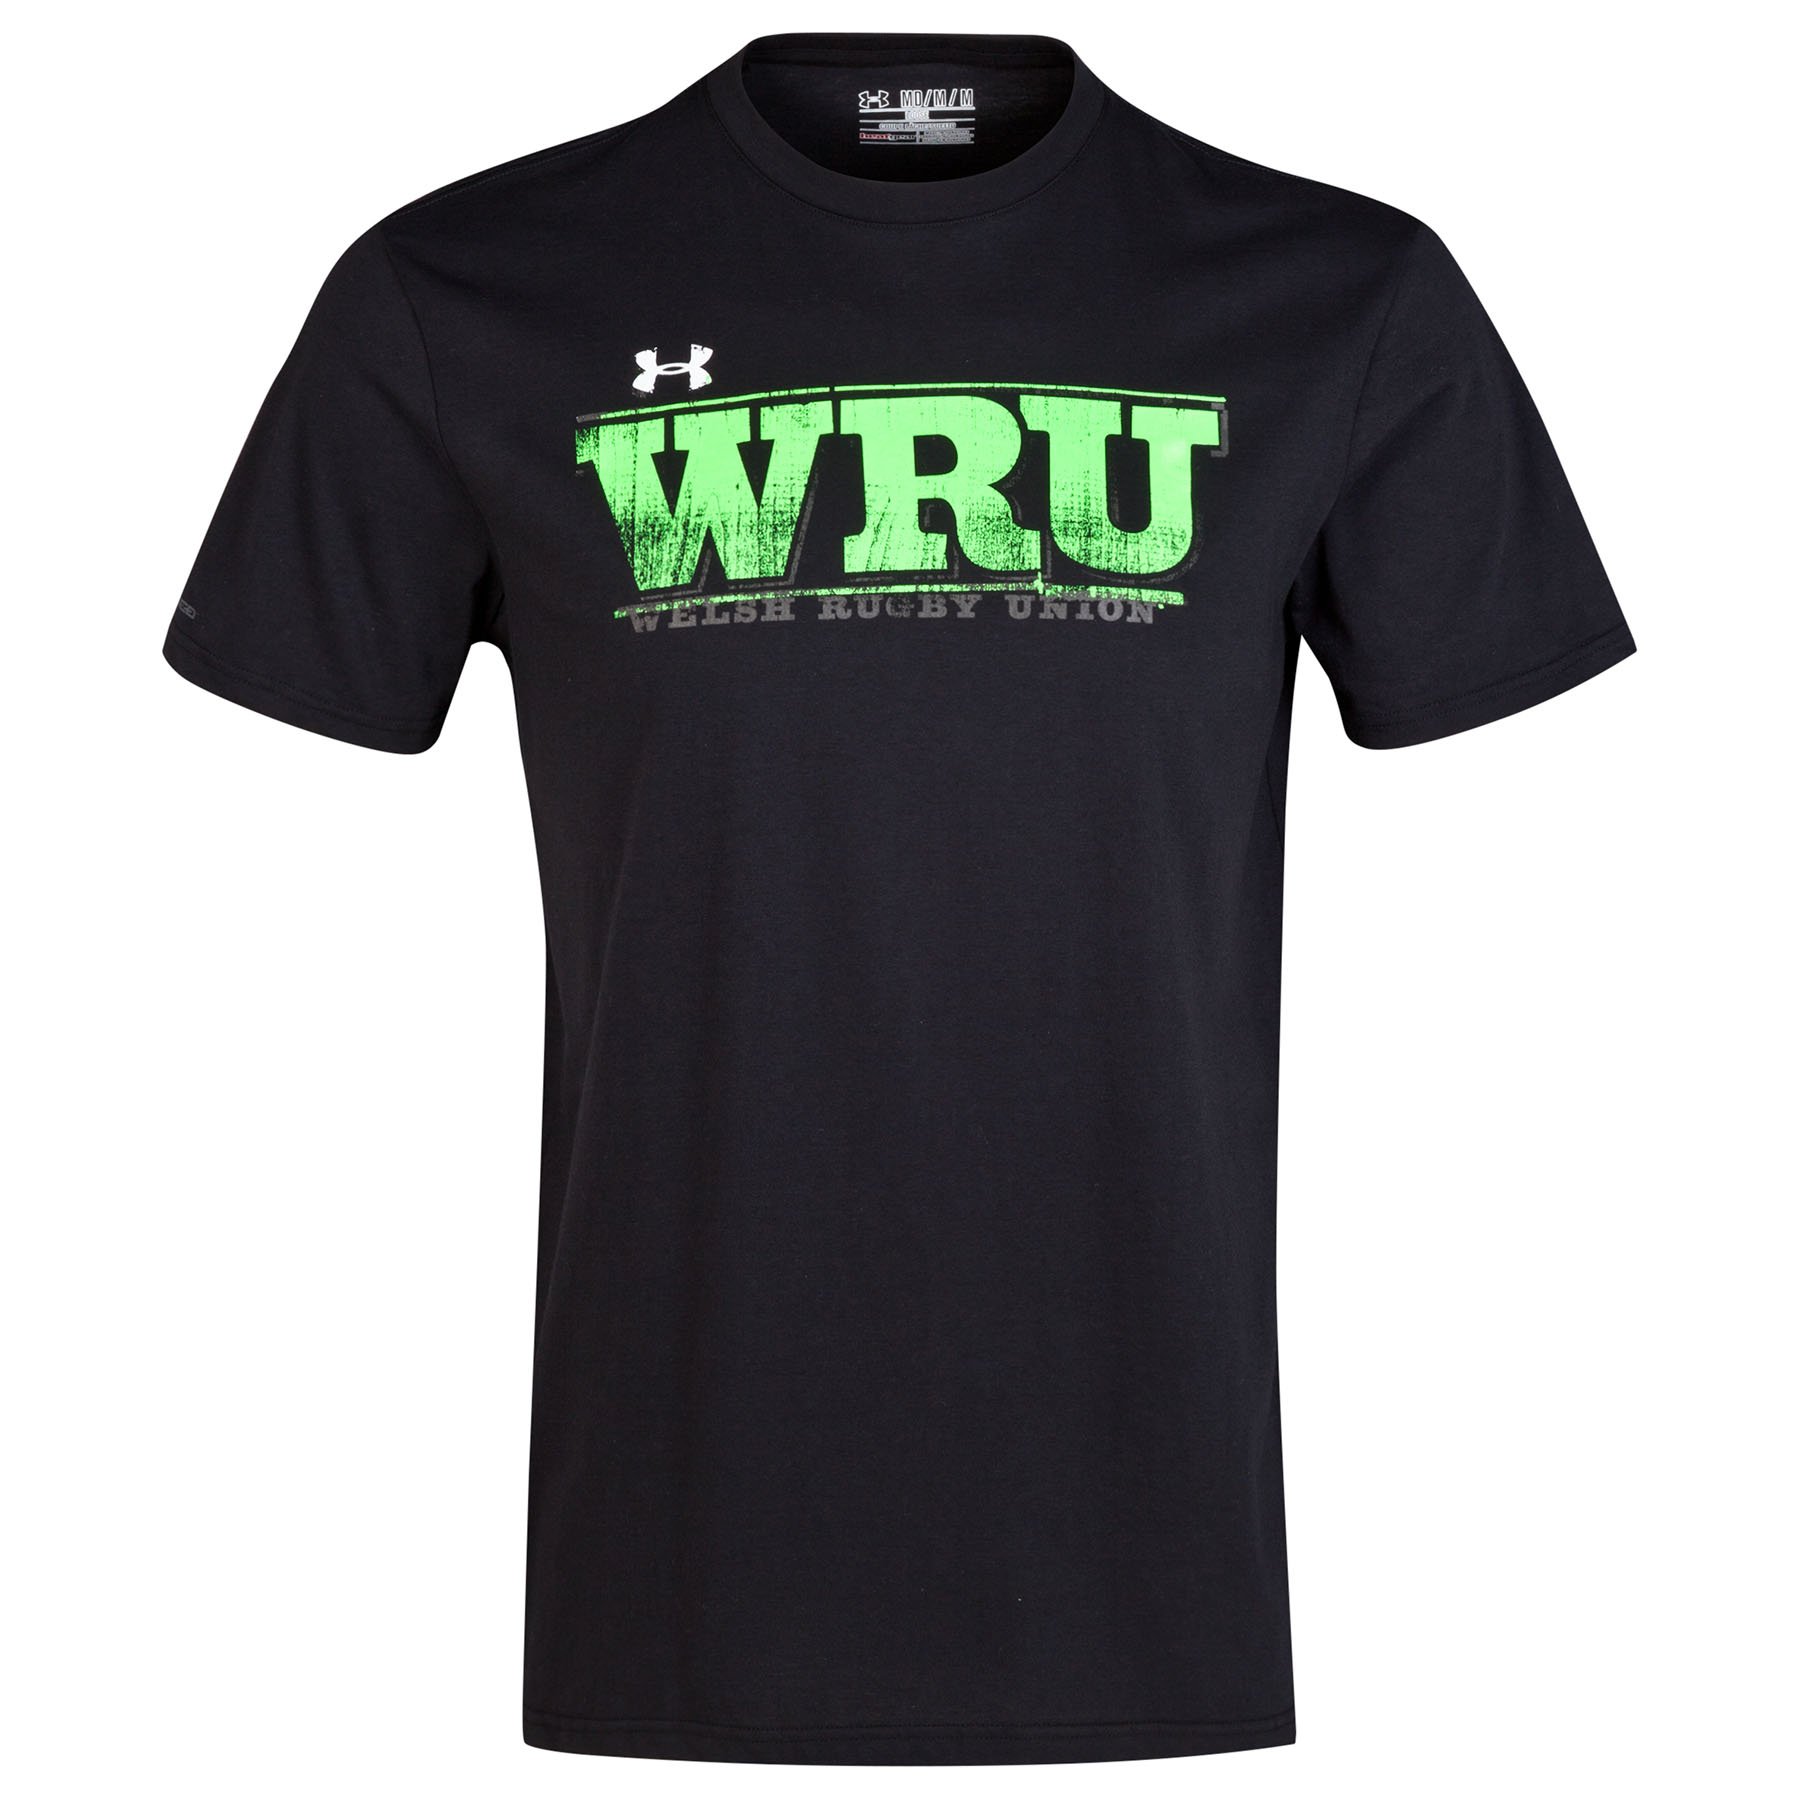 Wales Rugby Union Charged Cotton Tee 2014/15 Black